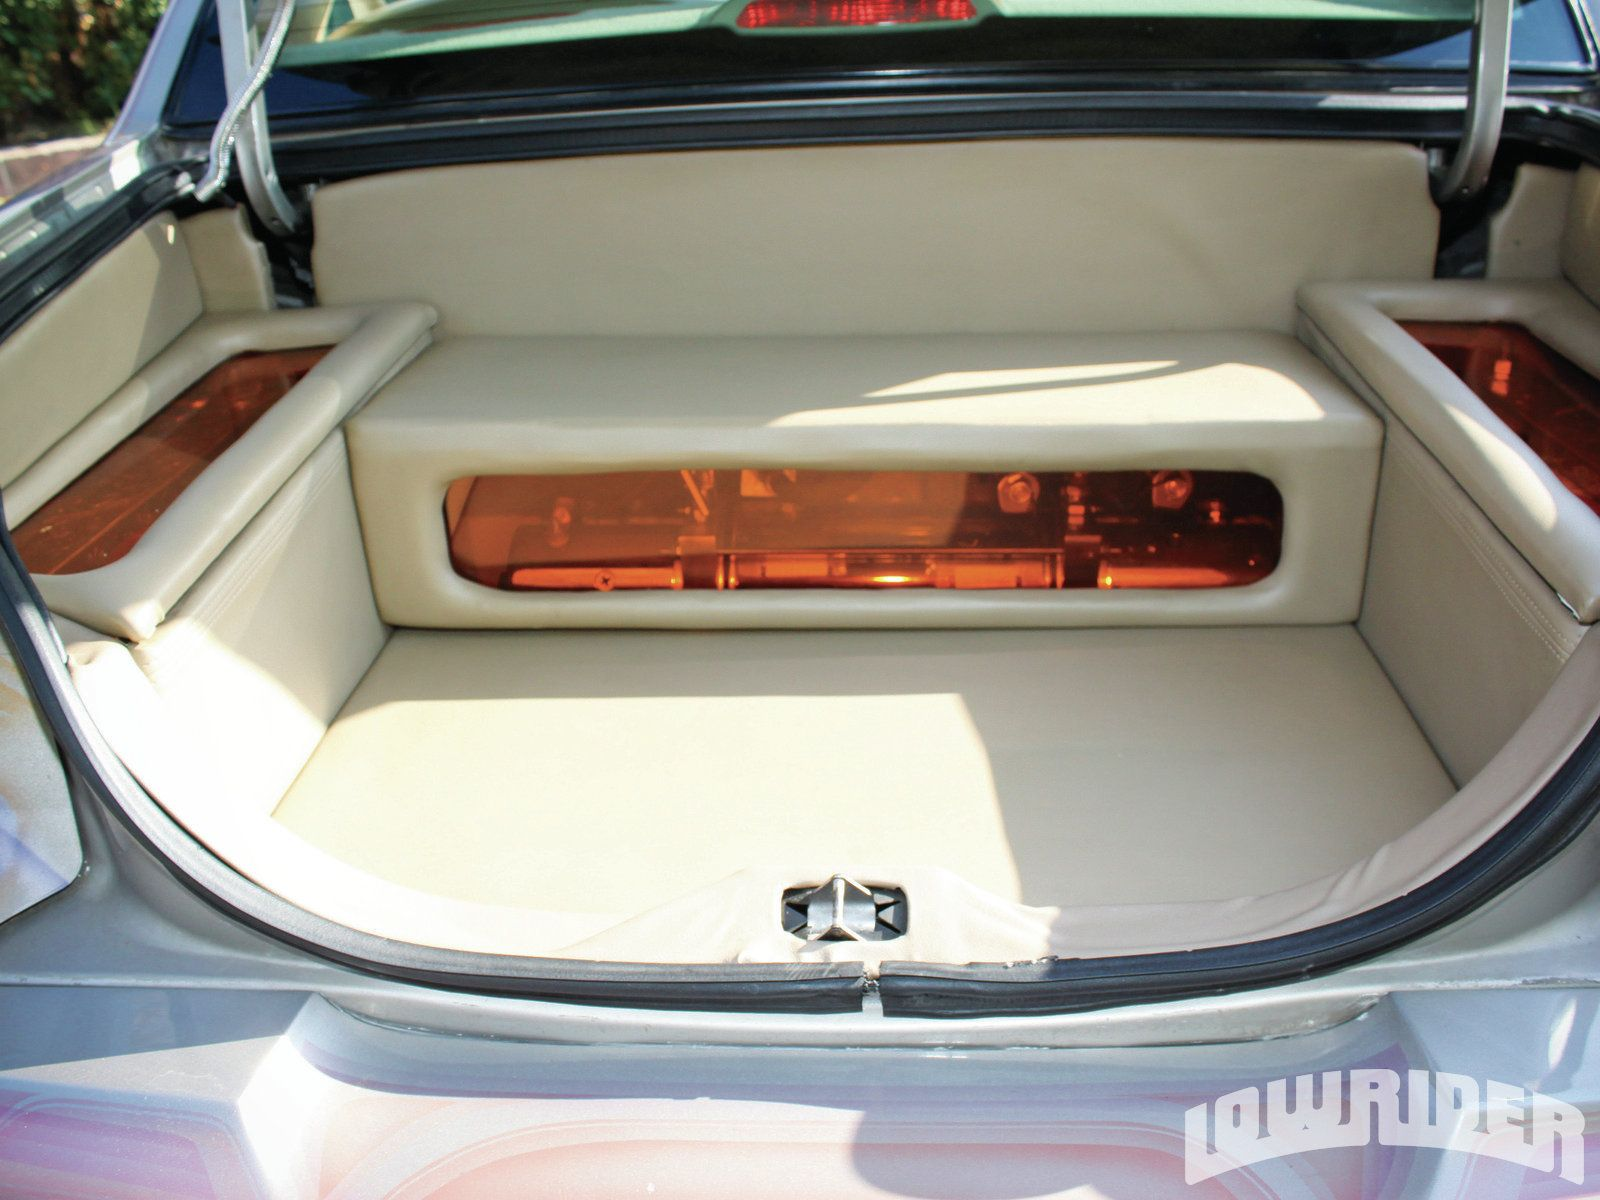 1999 Lincoln Towncar Custom Hydraulic Setup Audi Project